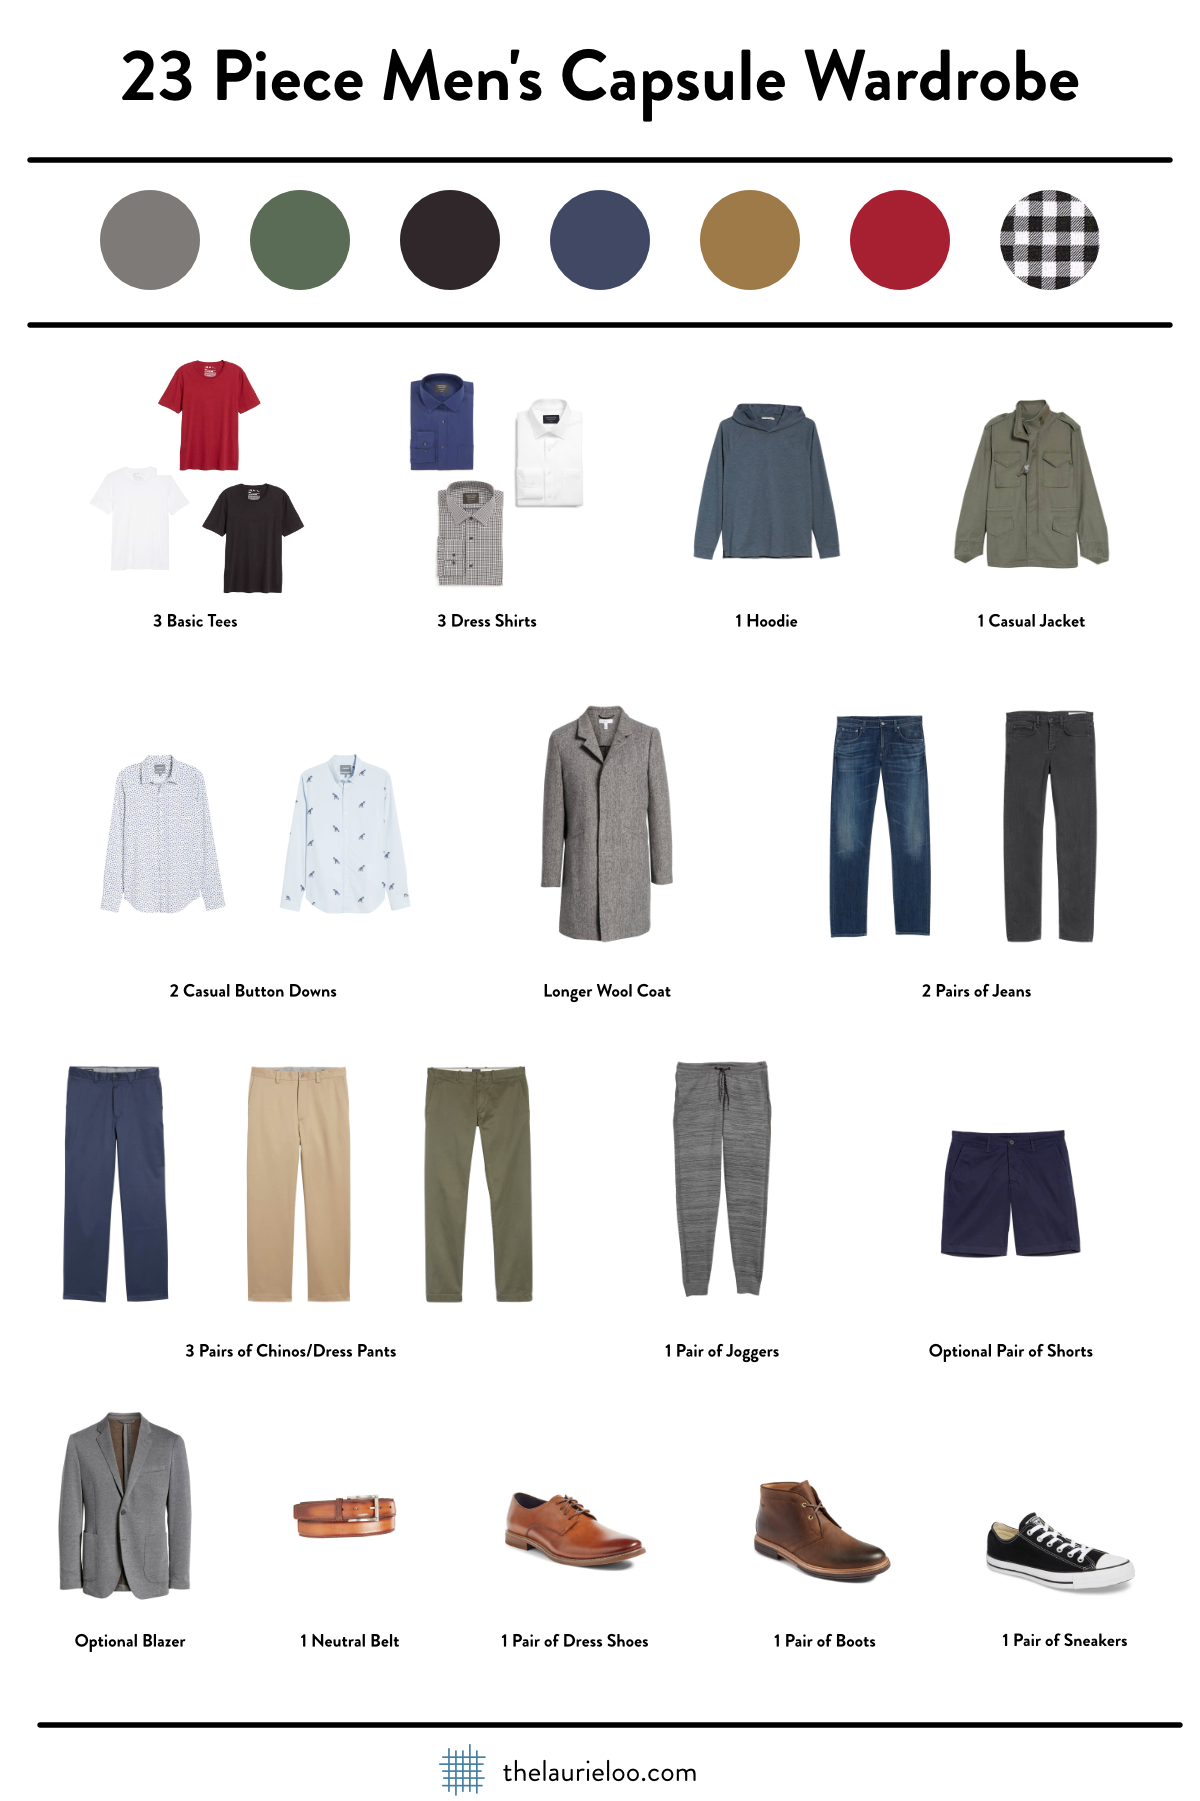 The Ultimate Capsule Wardrobe Guide for Men images